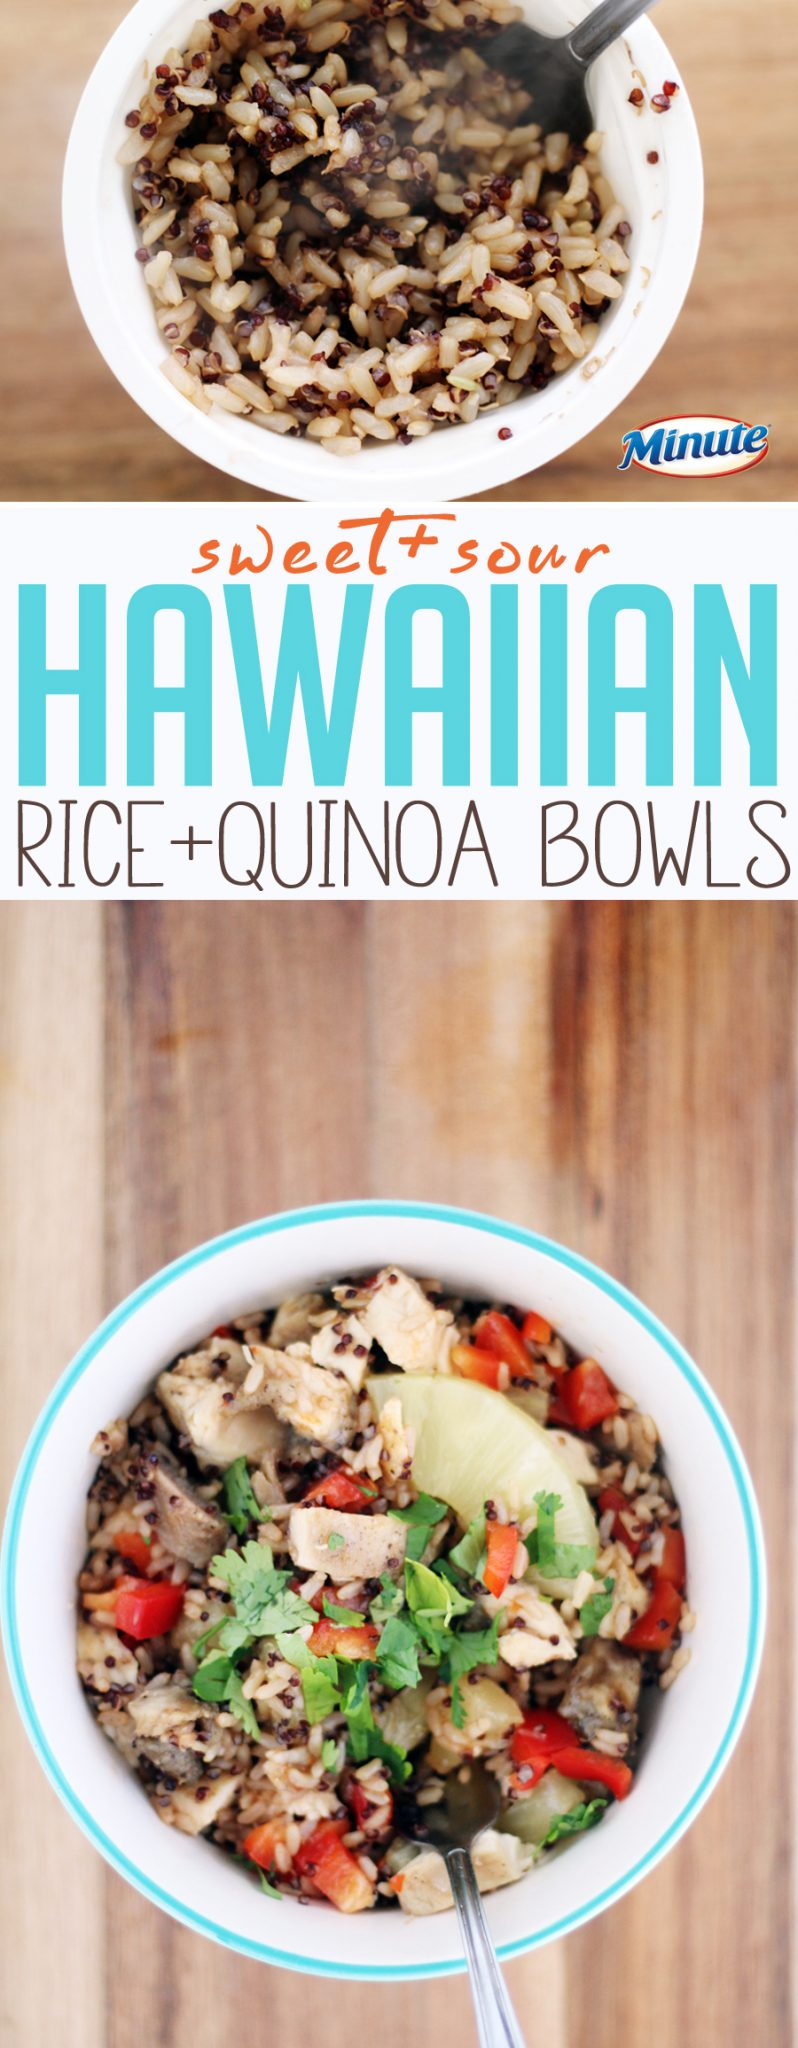 This fast recipe for rice + quinoa bowls is easy and full of sweet + sour flavor.